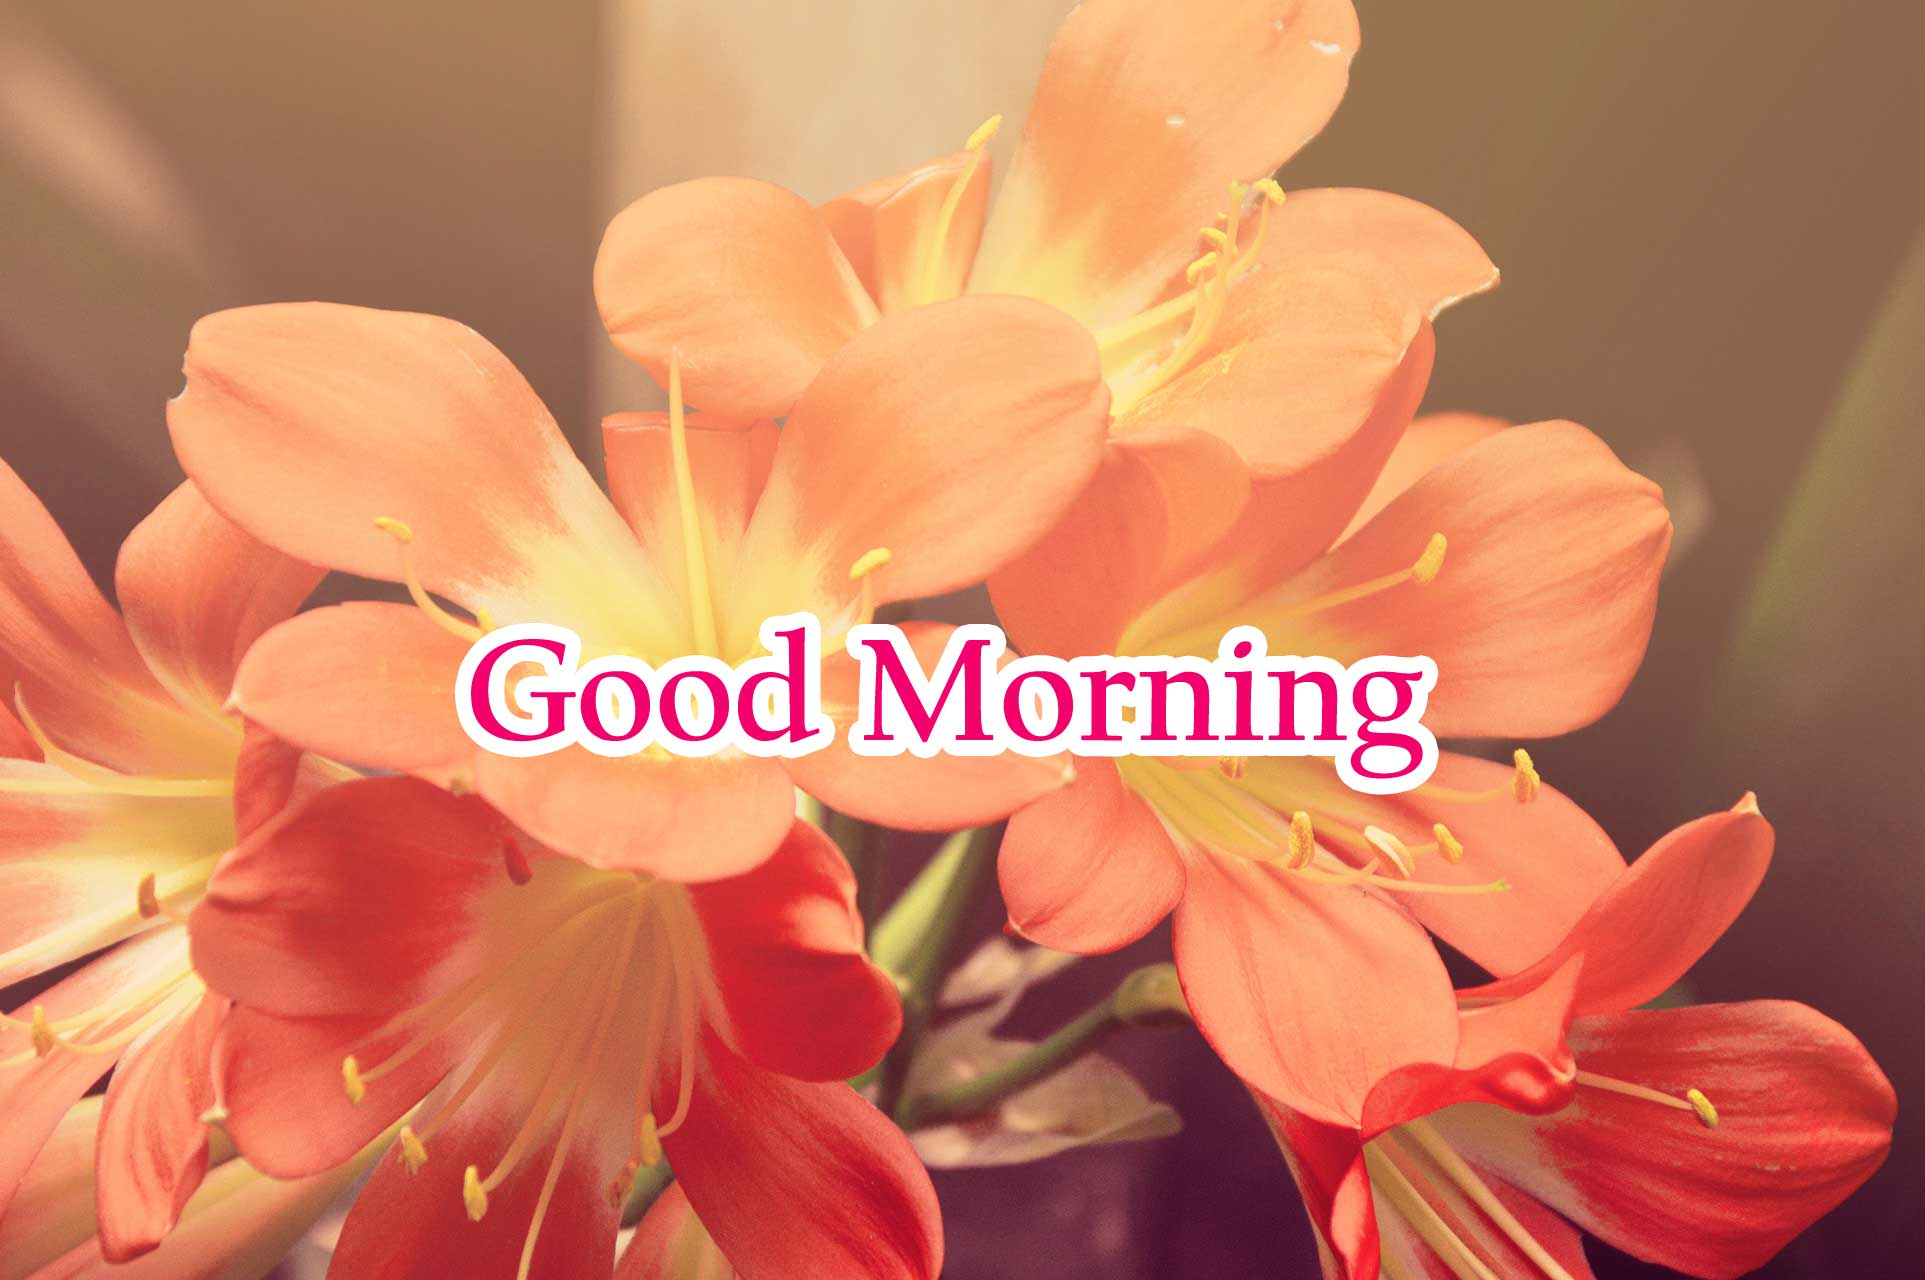 flowers good morning Images Photo Pics Wallpaper HD Download For Whatsaaap